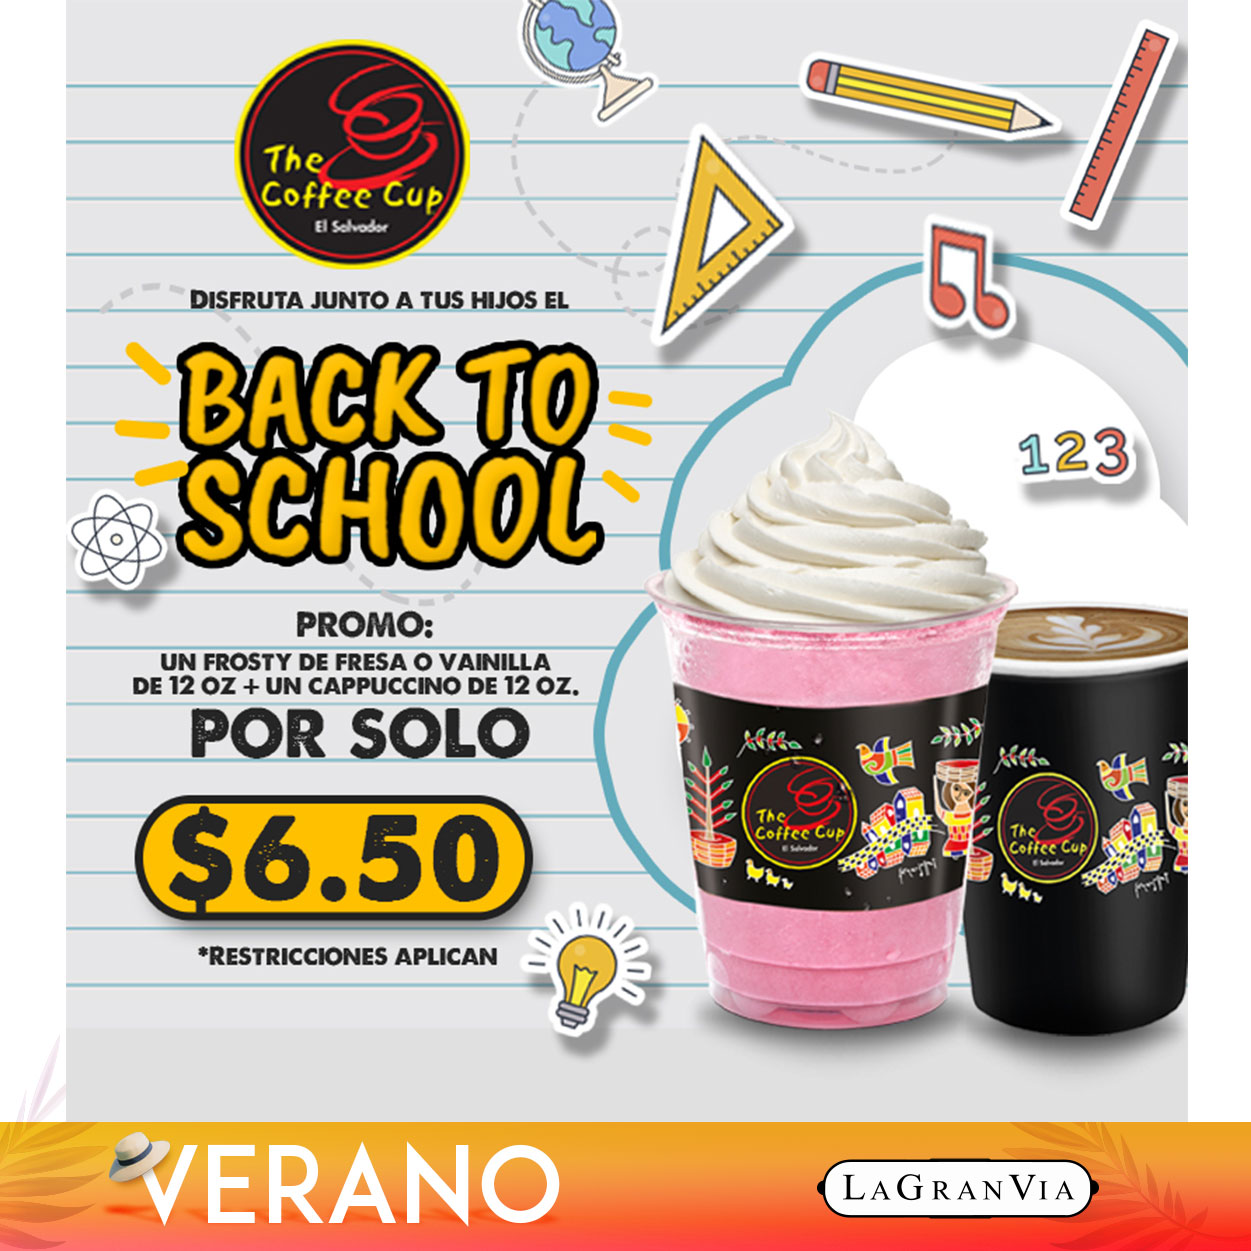 The Coffee Cup - Back To School